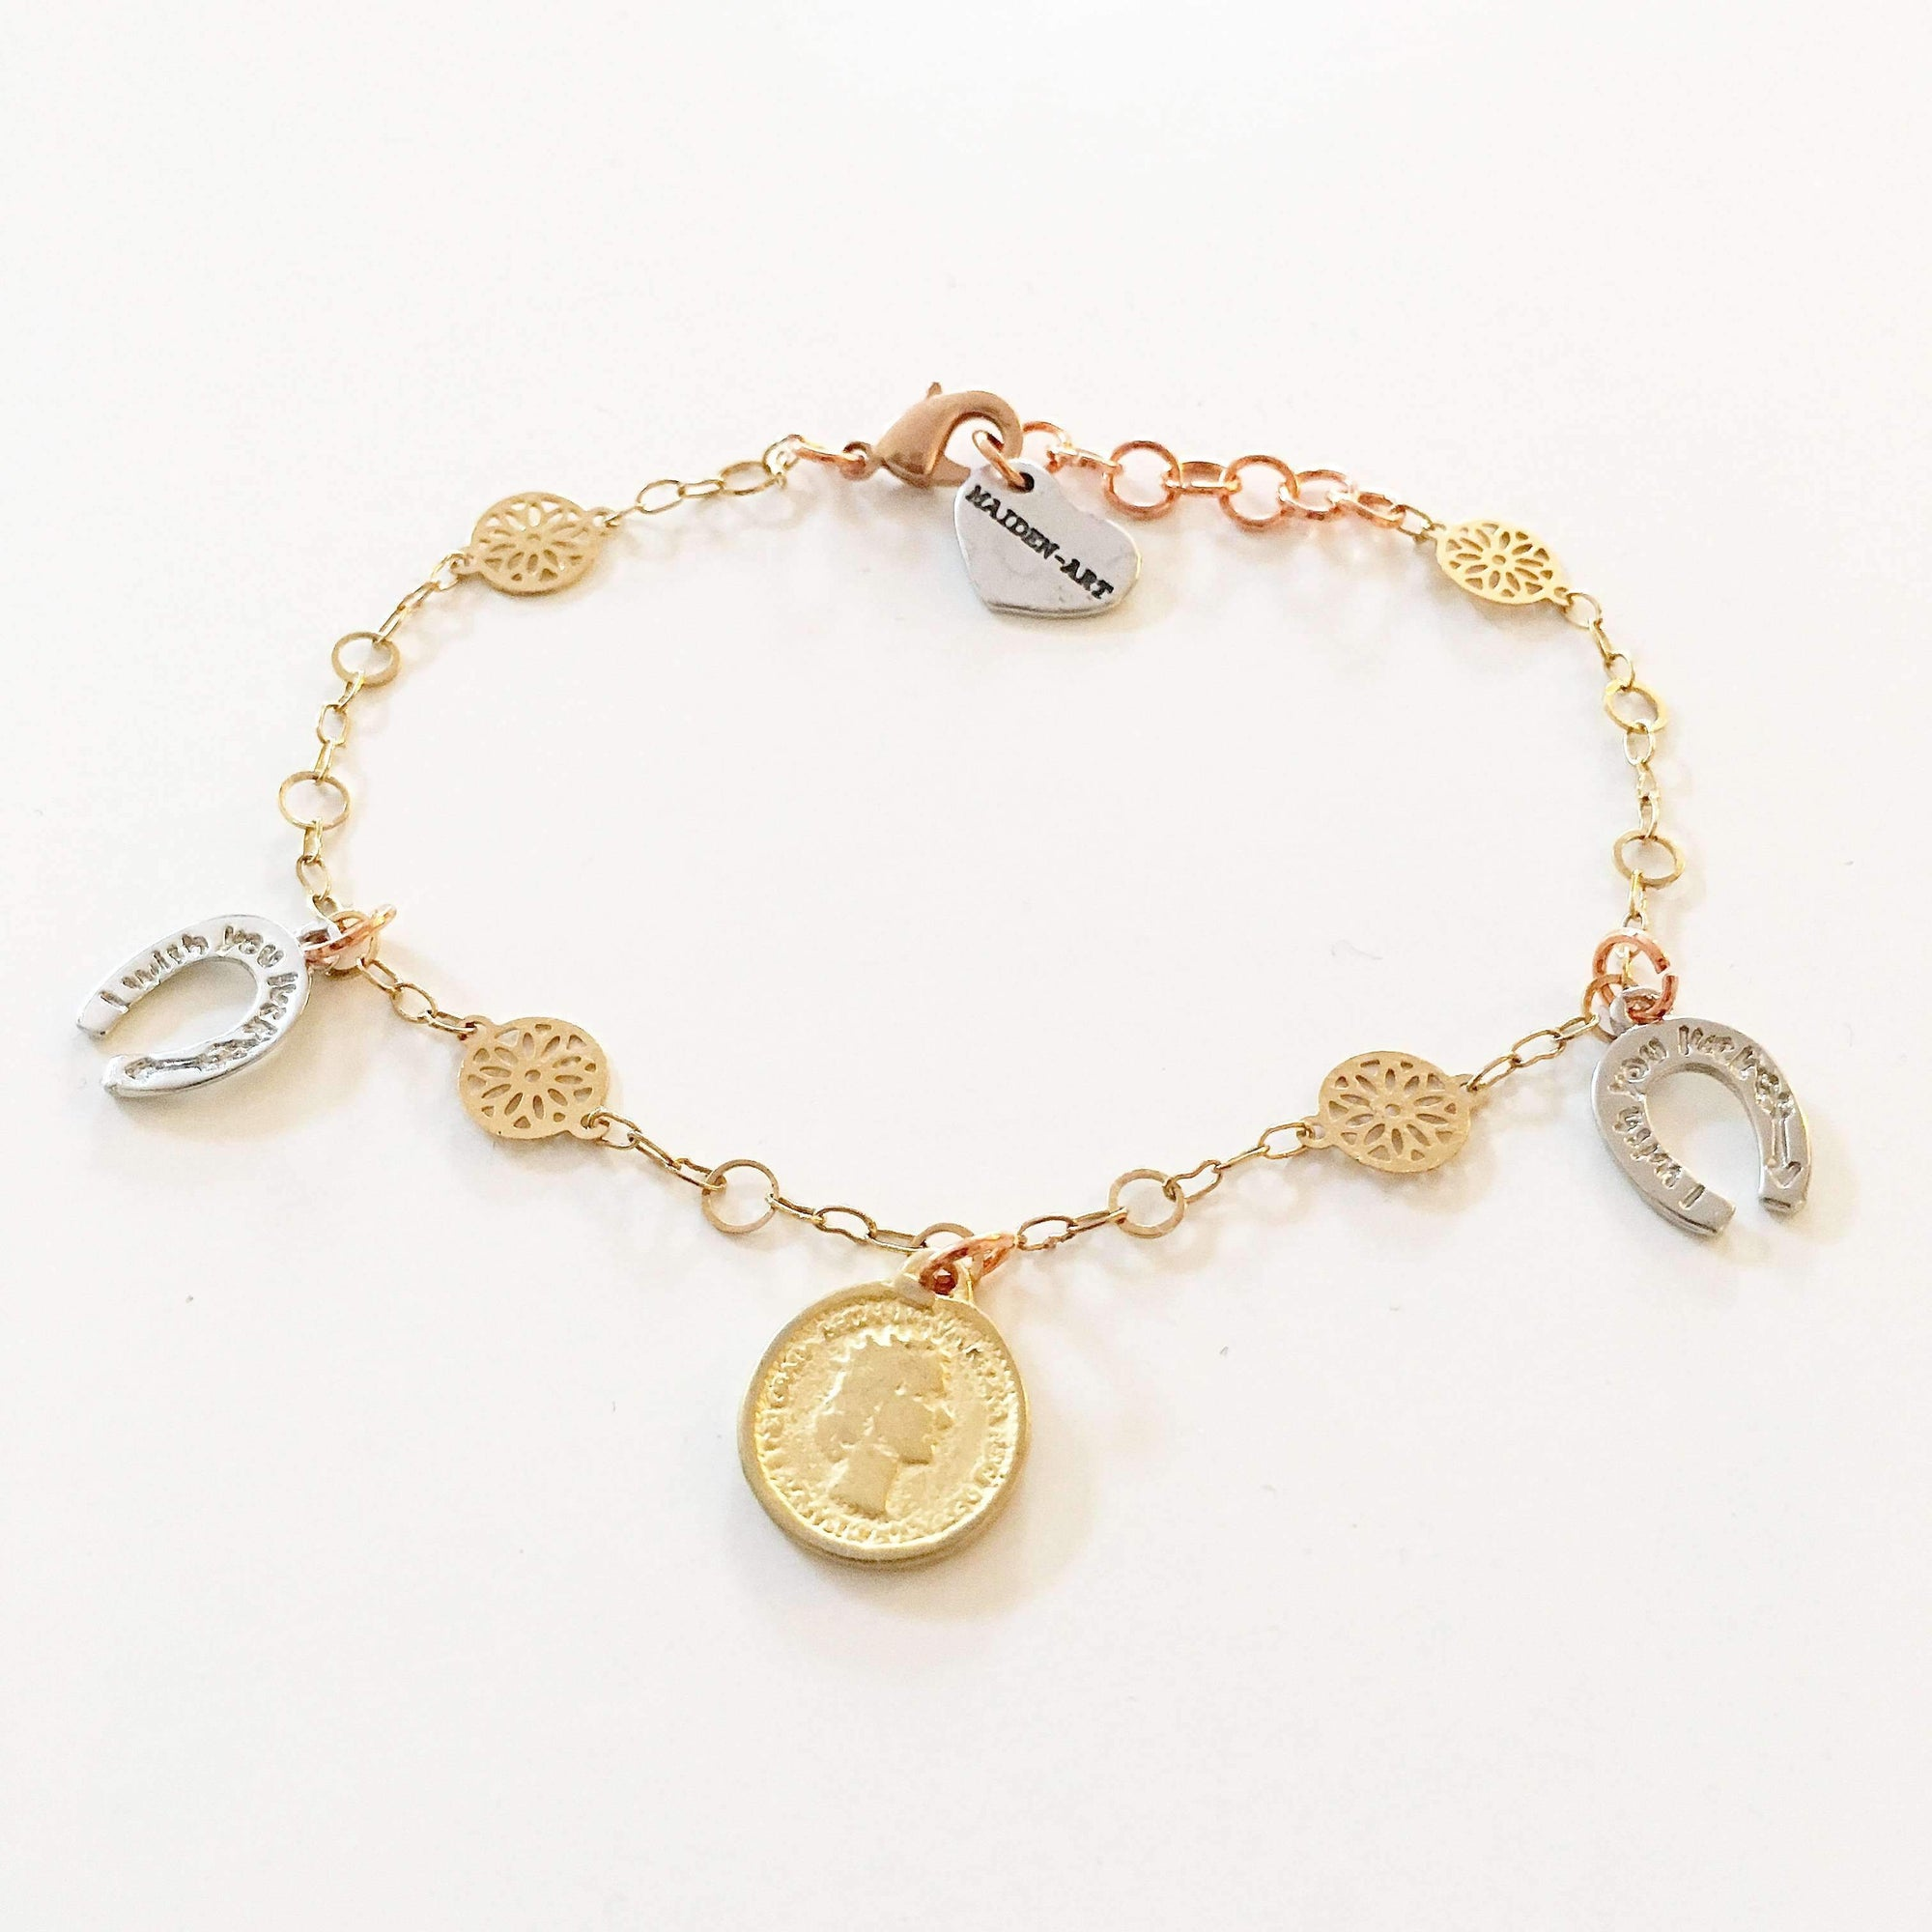 Coin and Horseshoes Sparkle Bracelet in 18kt Gold Plated. - Miraposa